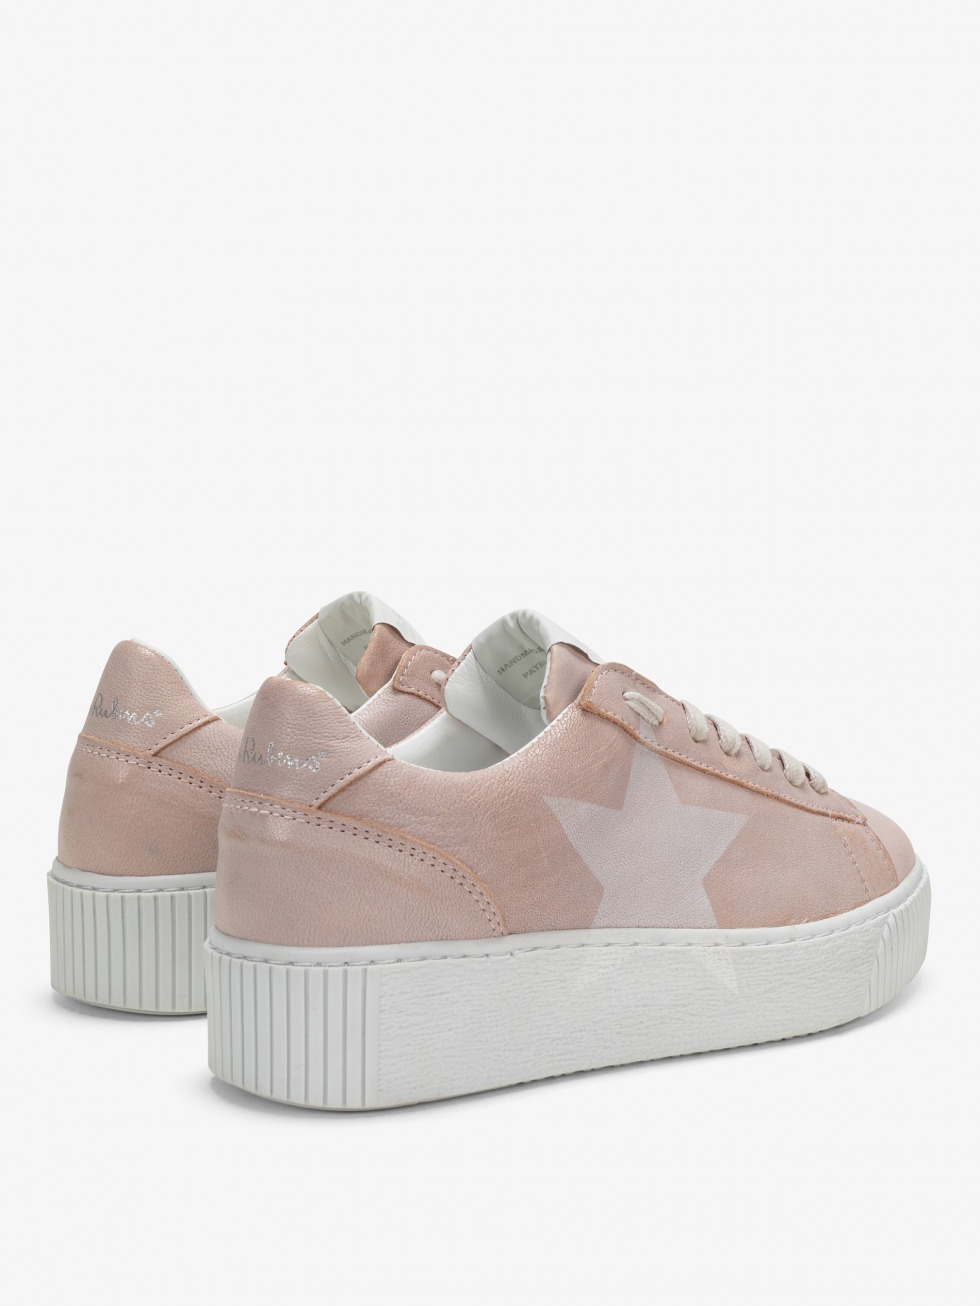 Cosmopolitan Sneakers - Taffy Star